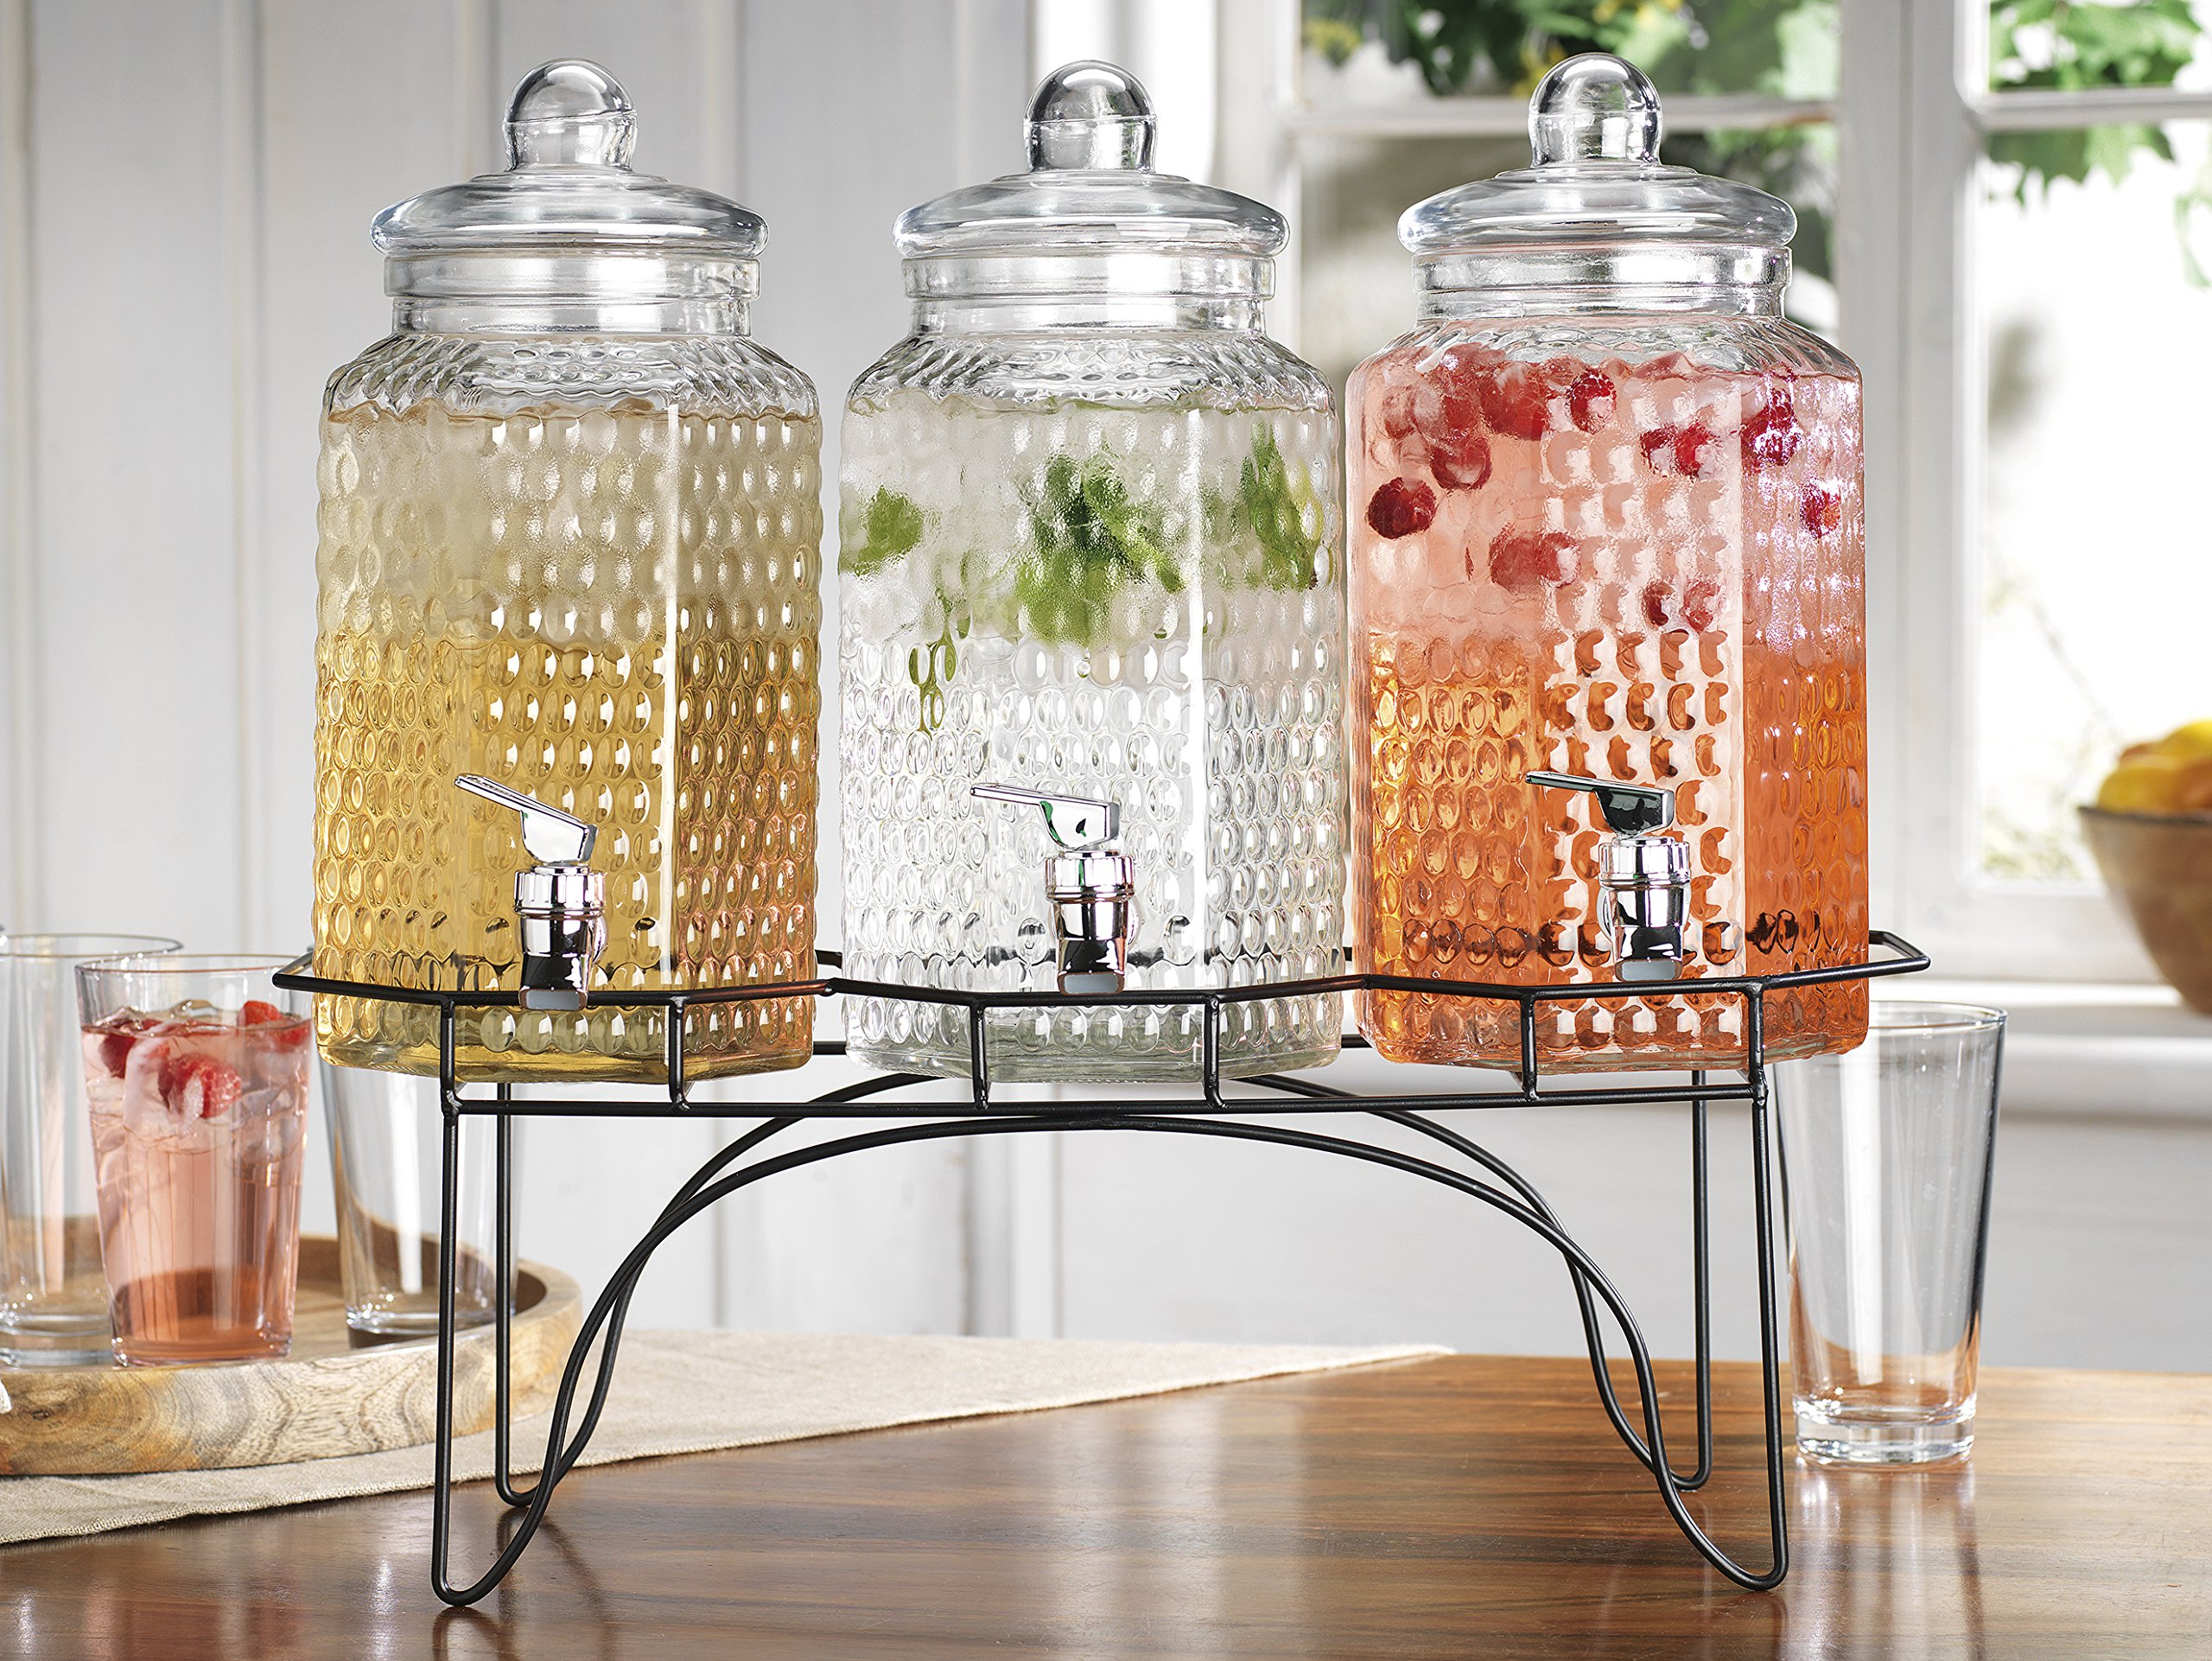 Elegant Home (3) 1 Gallon Each Quality Ice Cold Clear Glass Jug Beverage Dispensers Hermetic Seal Metal Display by HC